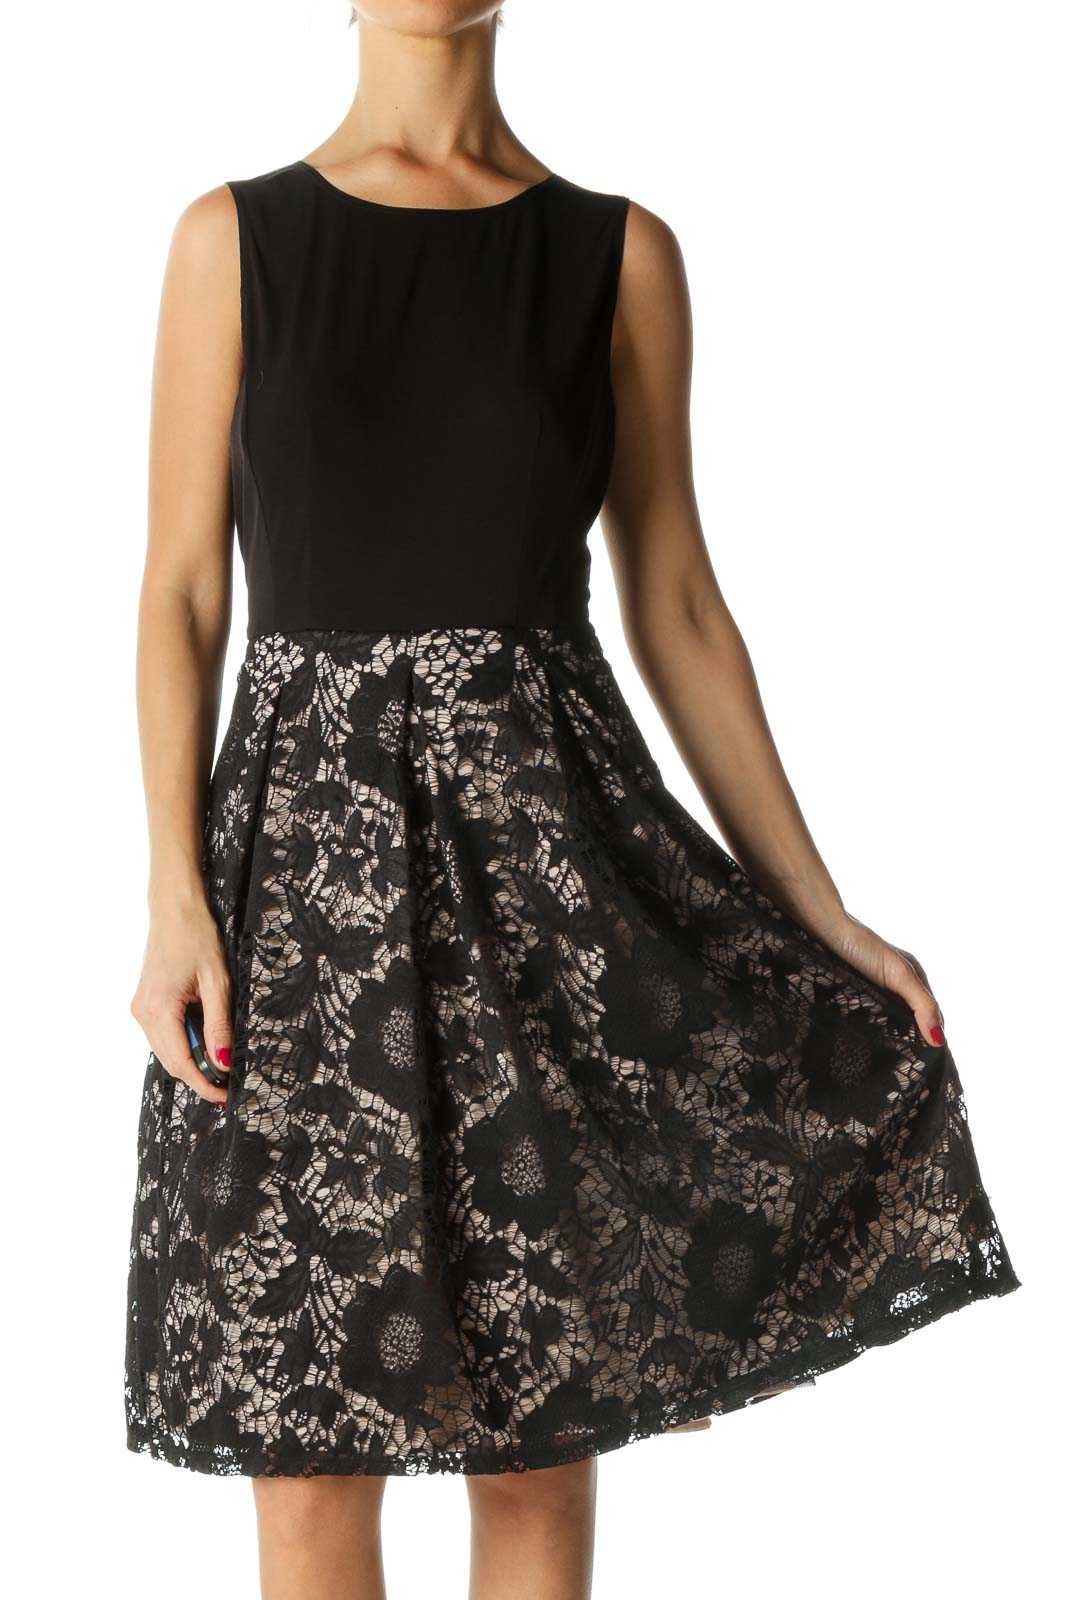 Beige and Black Lace Skirt Dress Front